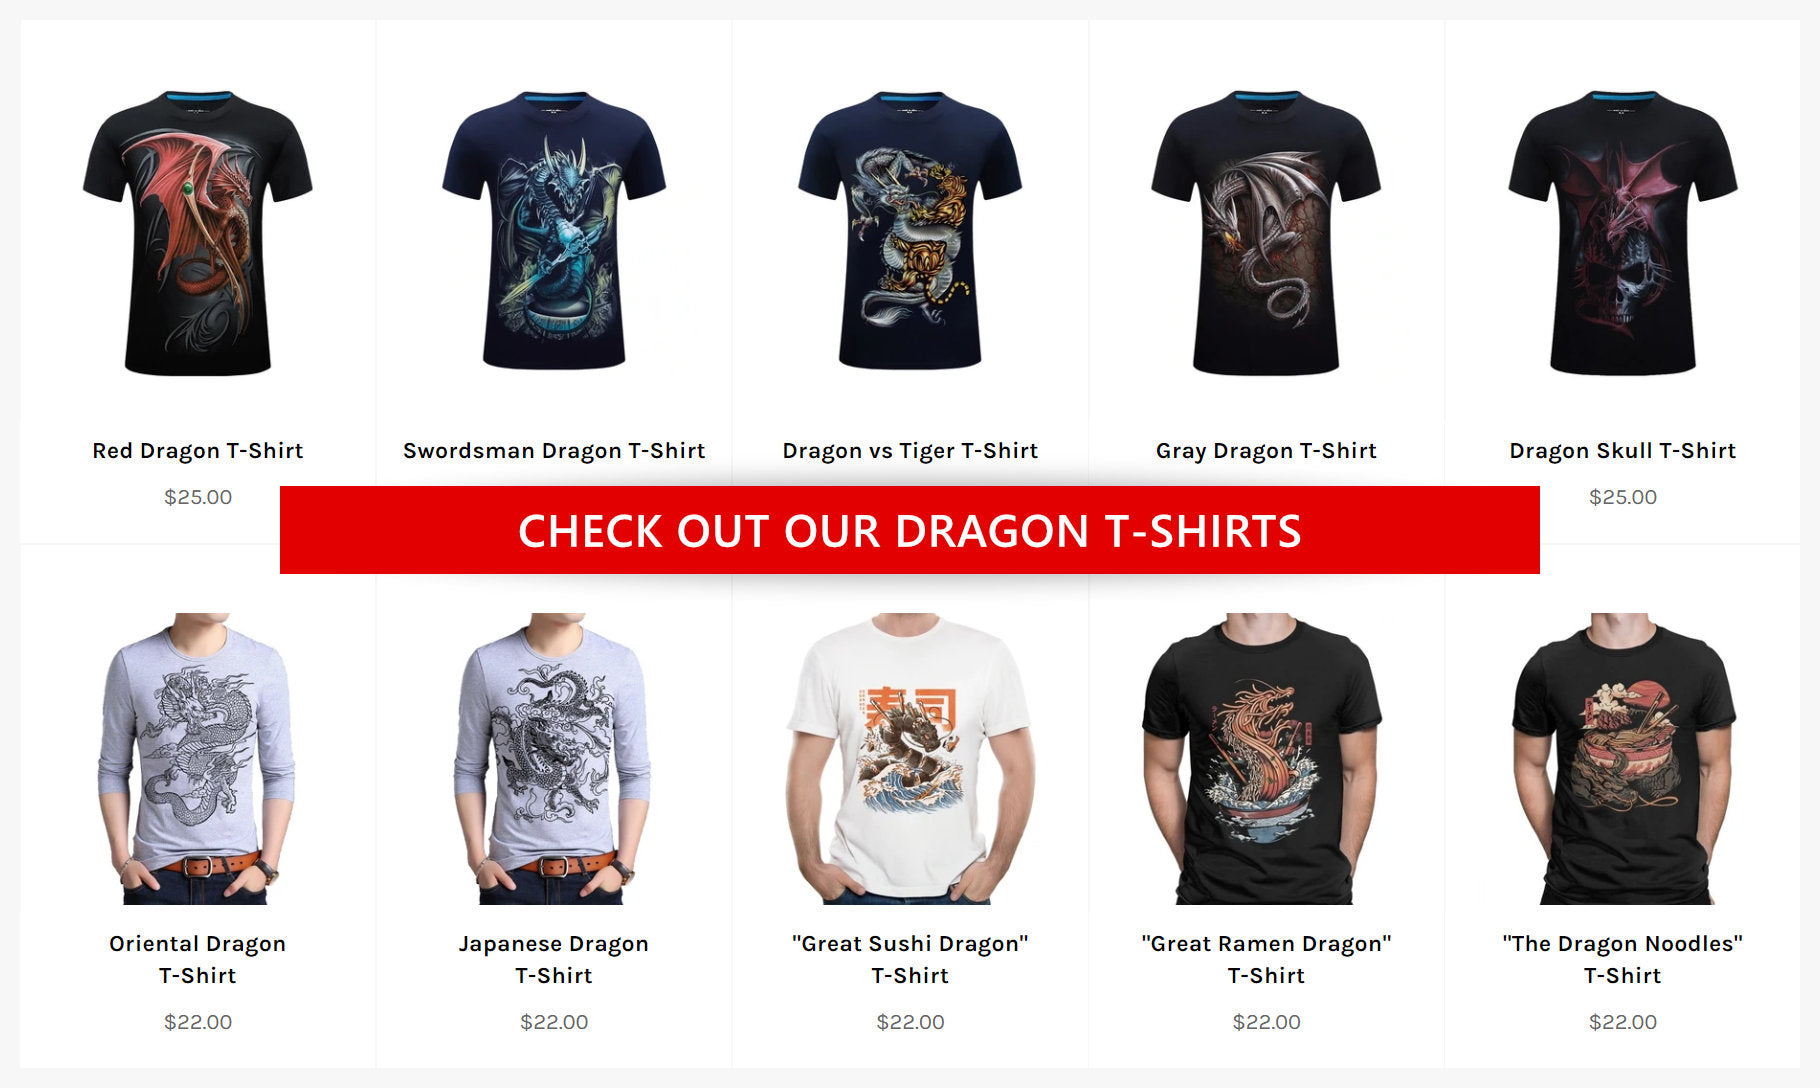 The Dragon Shop's T-Shirts